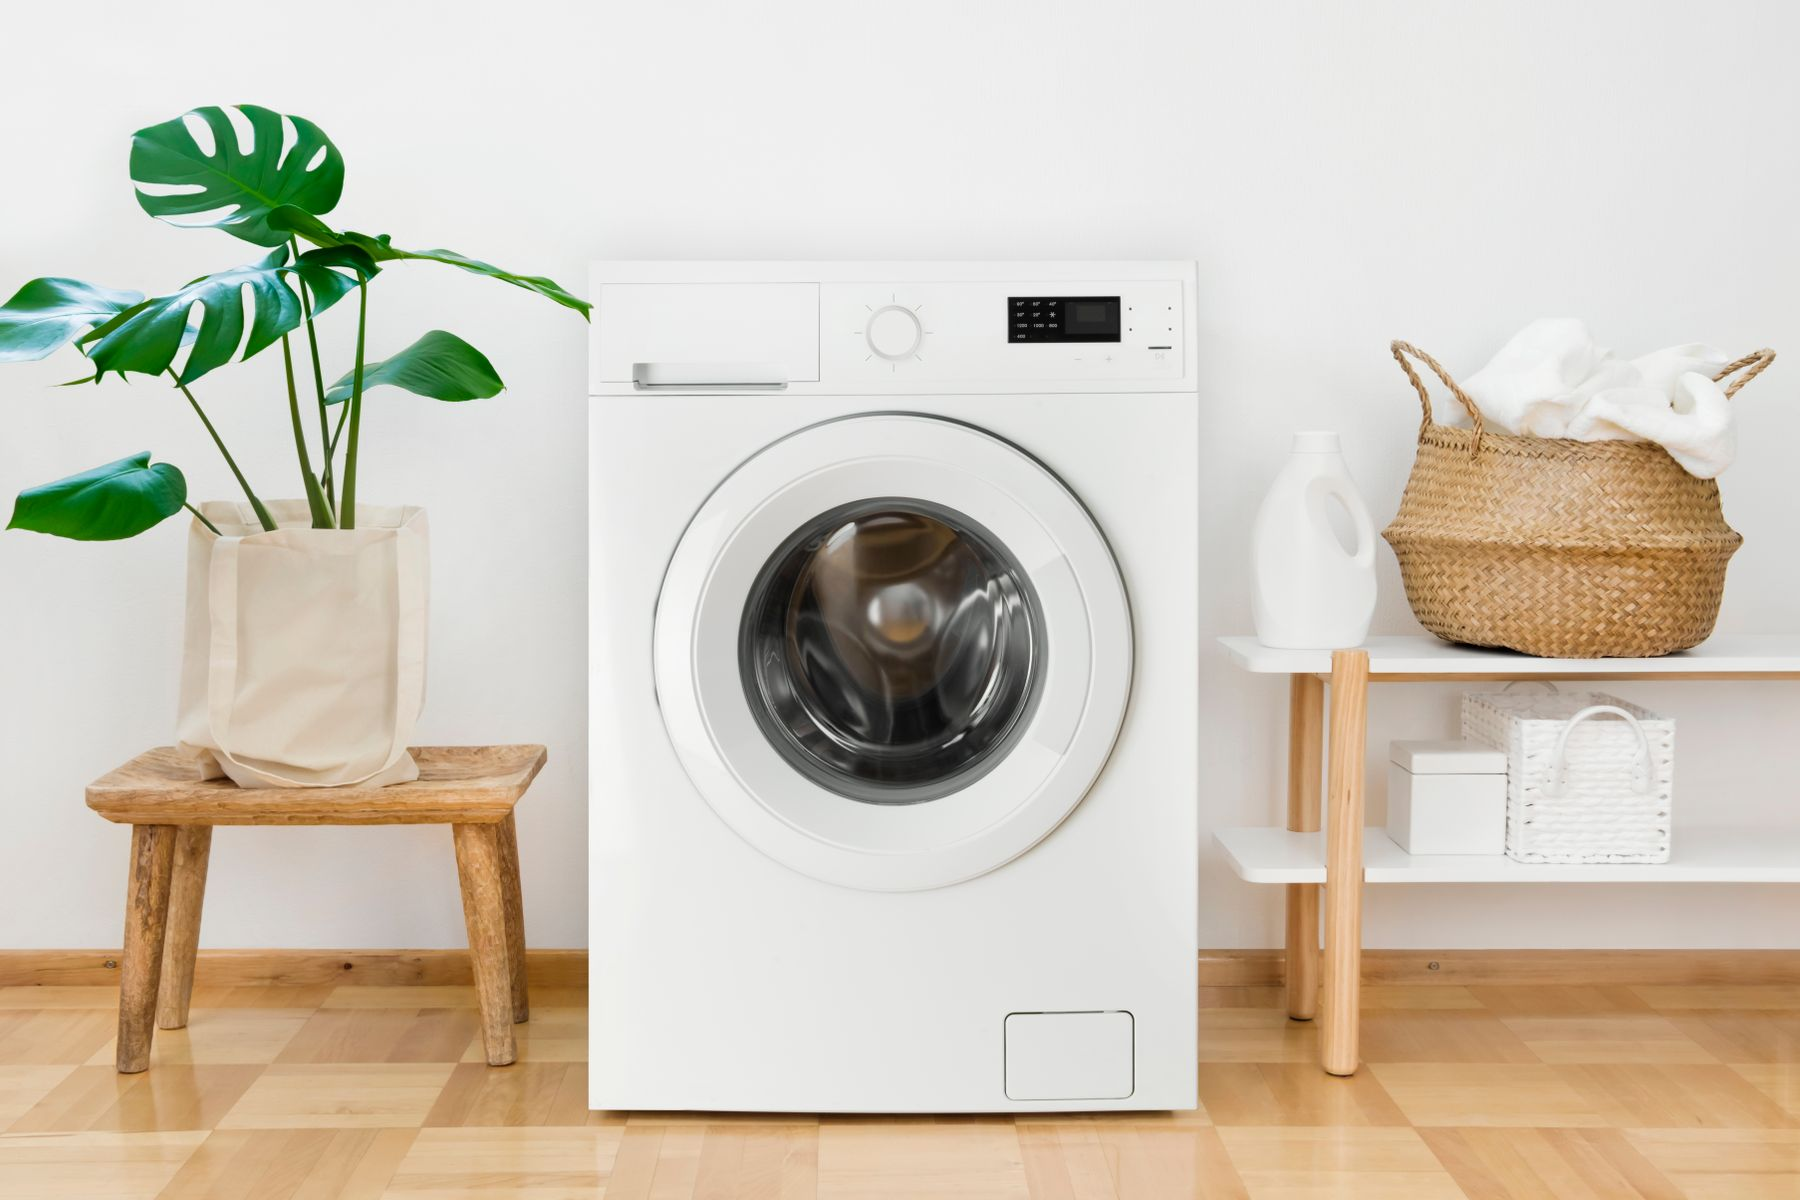 clean white washing machine next to a plant and some white fresh laundry